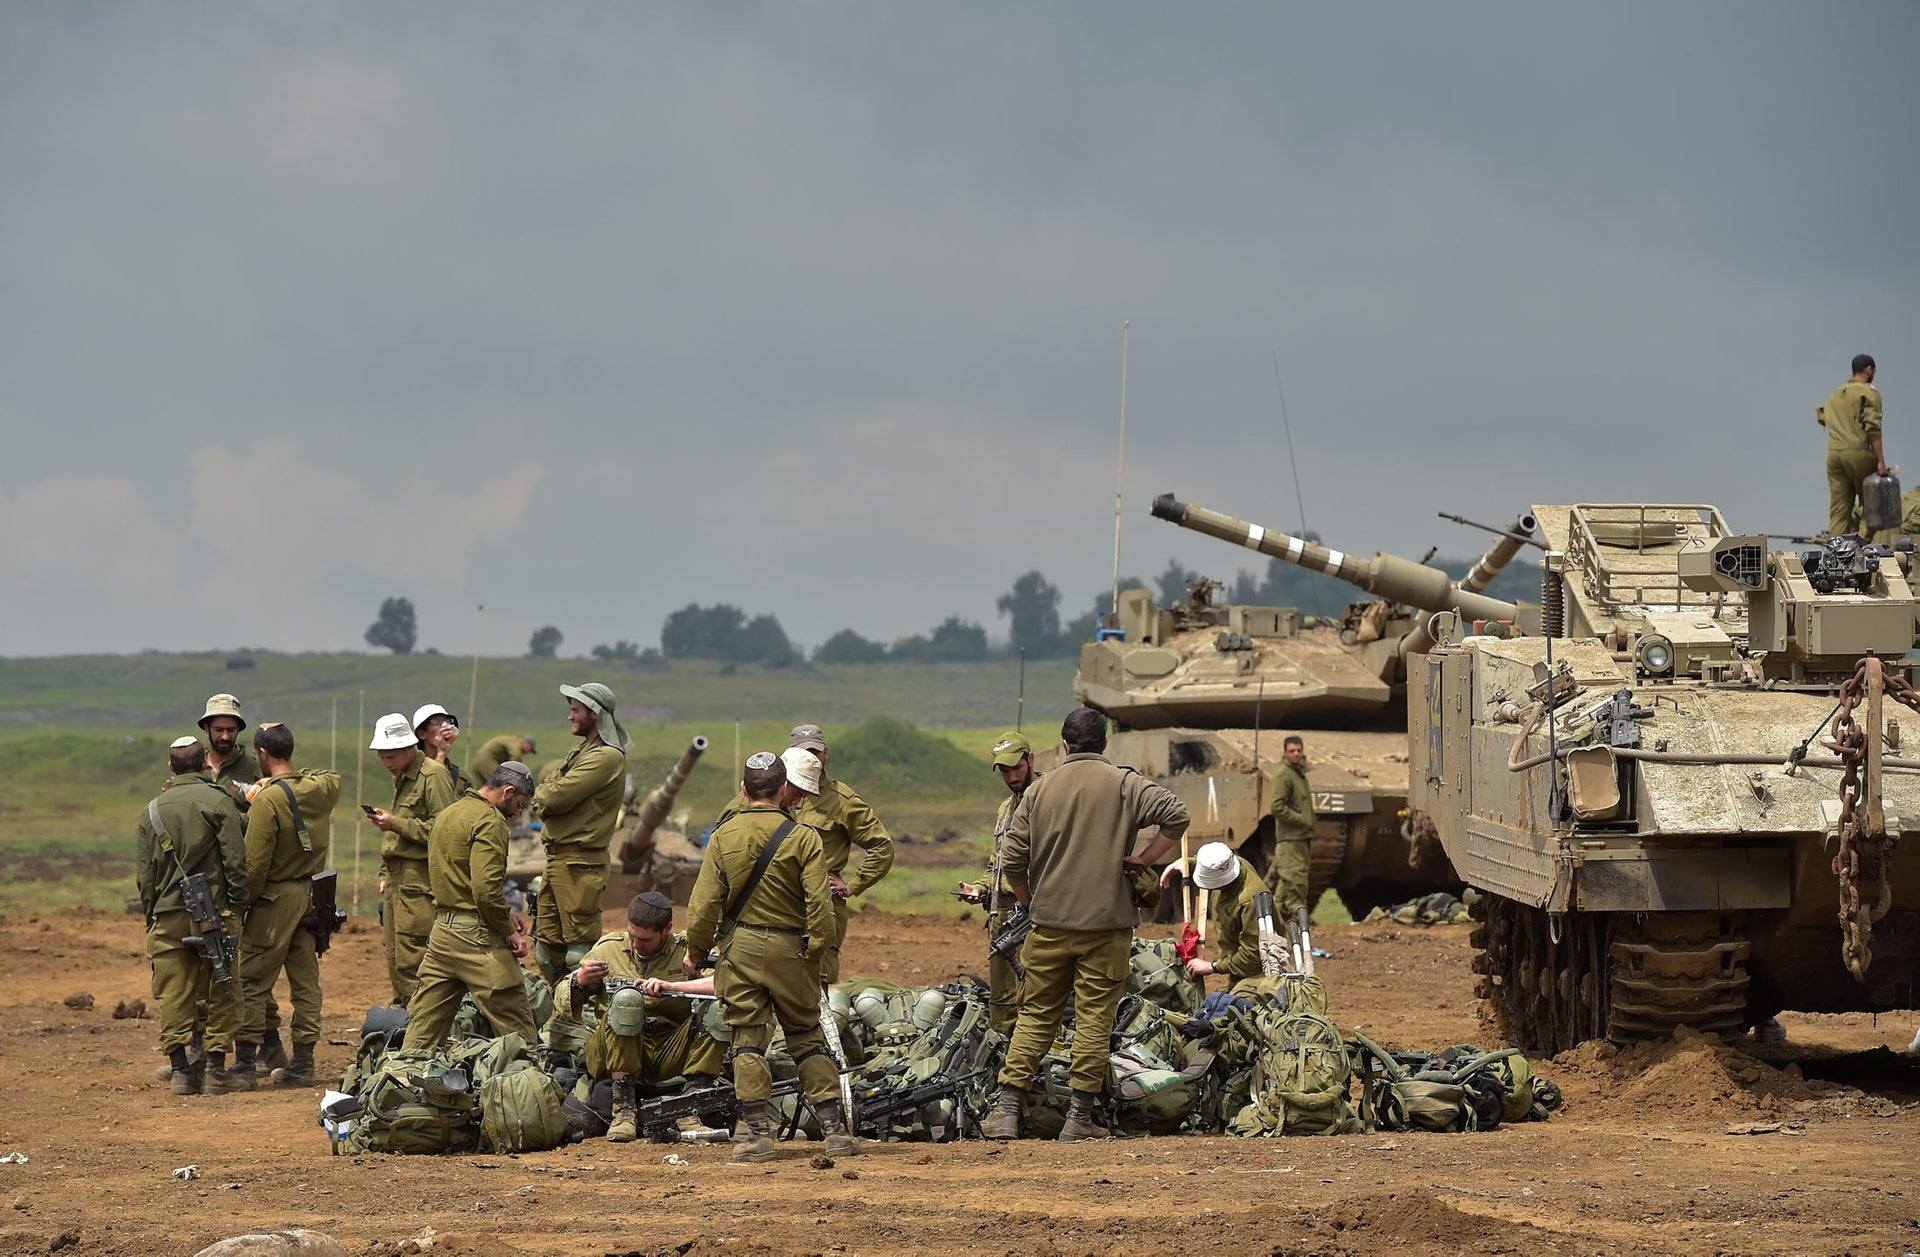 Israeli forces in the Golan Heights, April 4, 2018